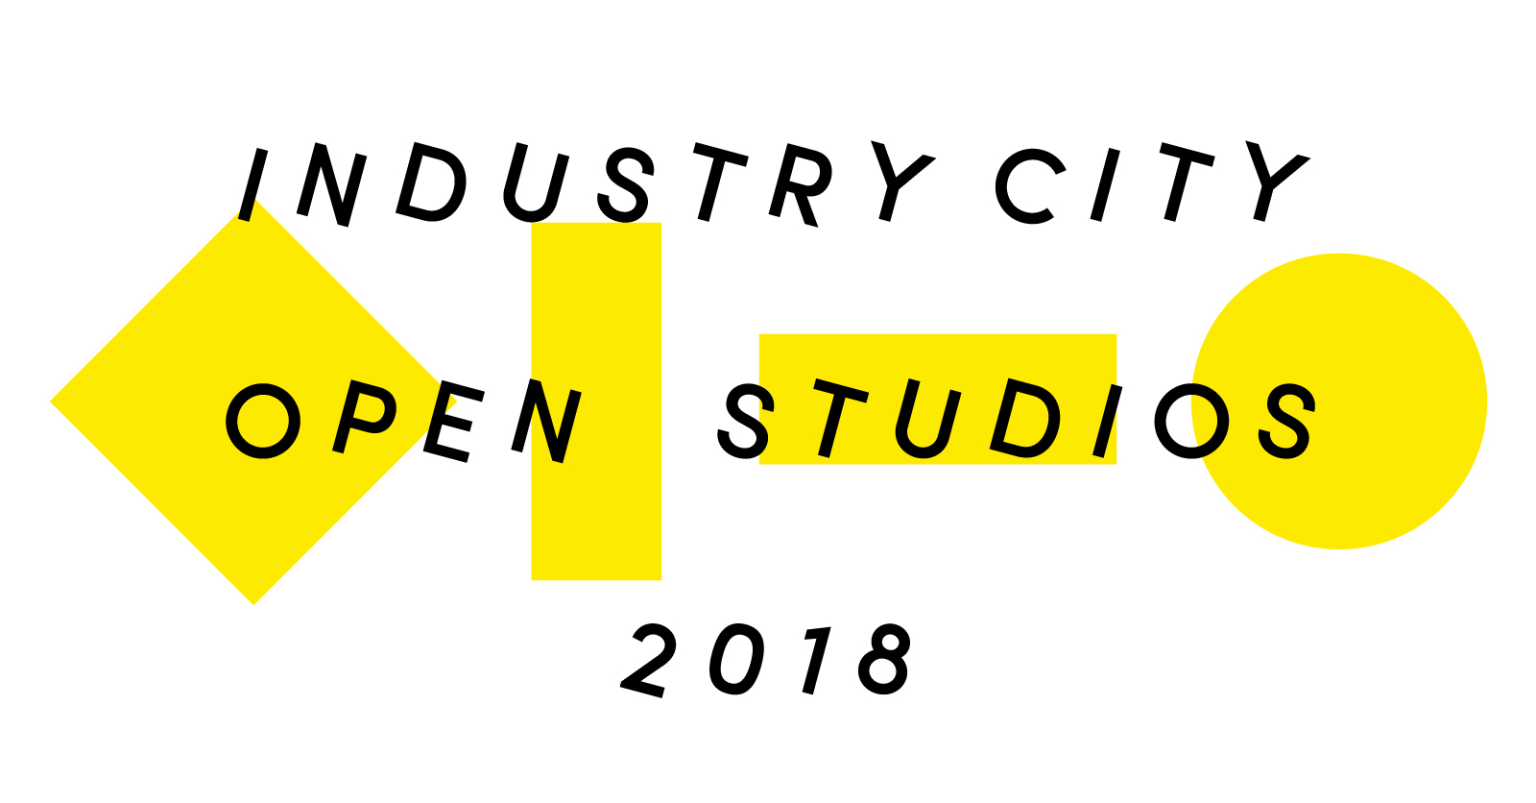 Industry City Open Studios 2018